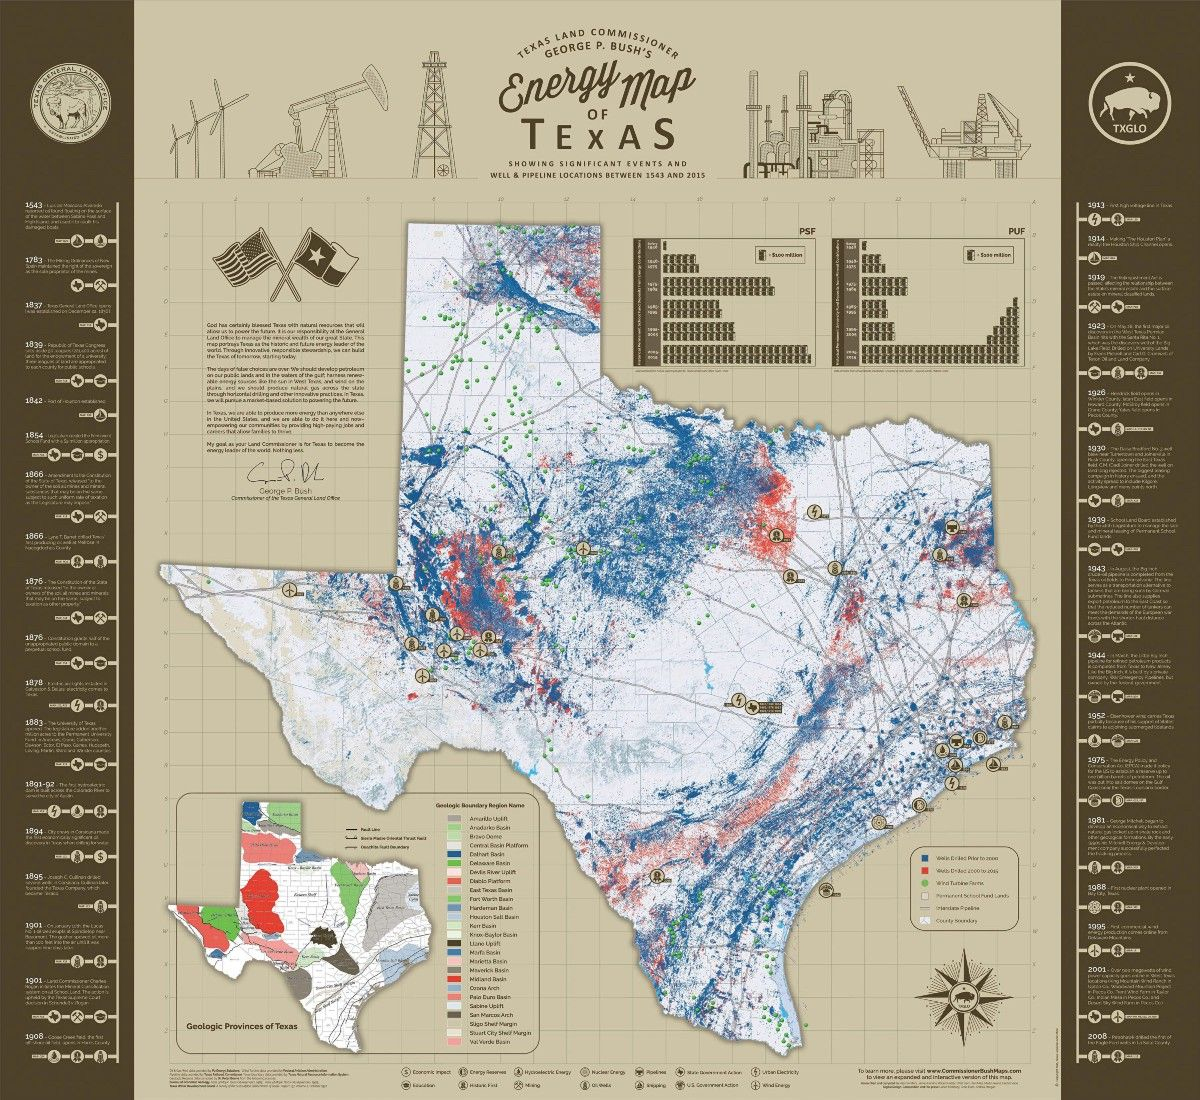 Texas Land Commissioner George P. | Texas Land, Texas History And - Texas Land Map